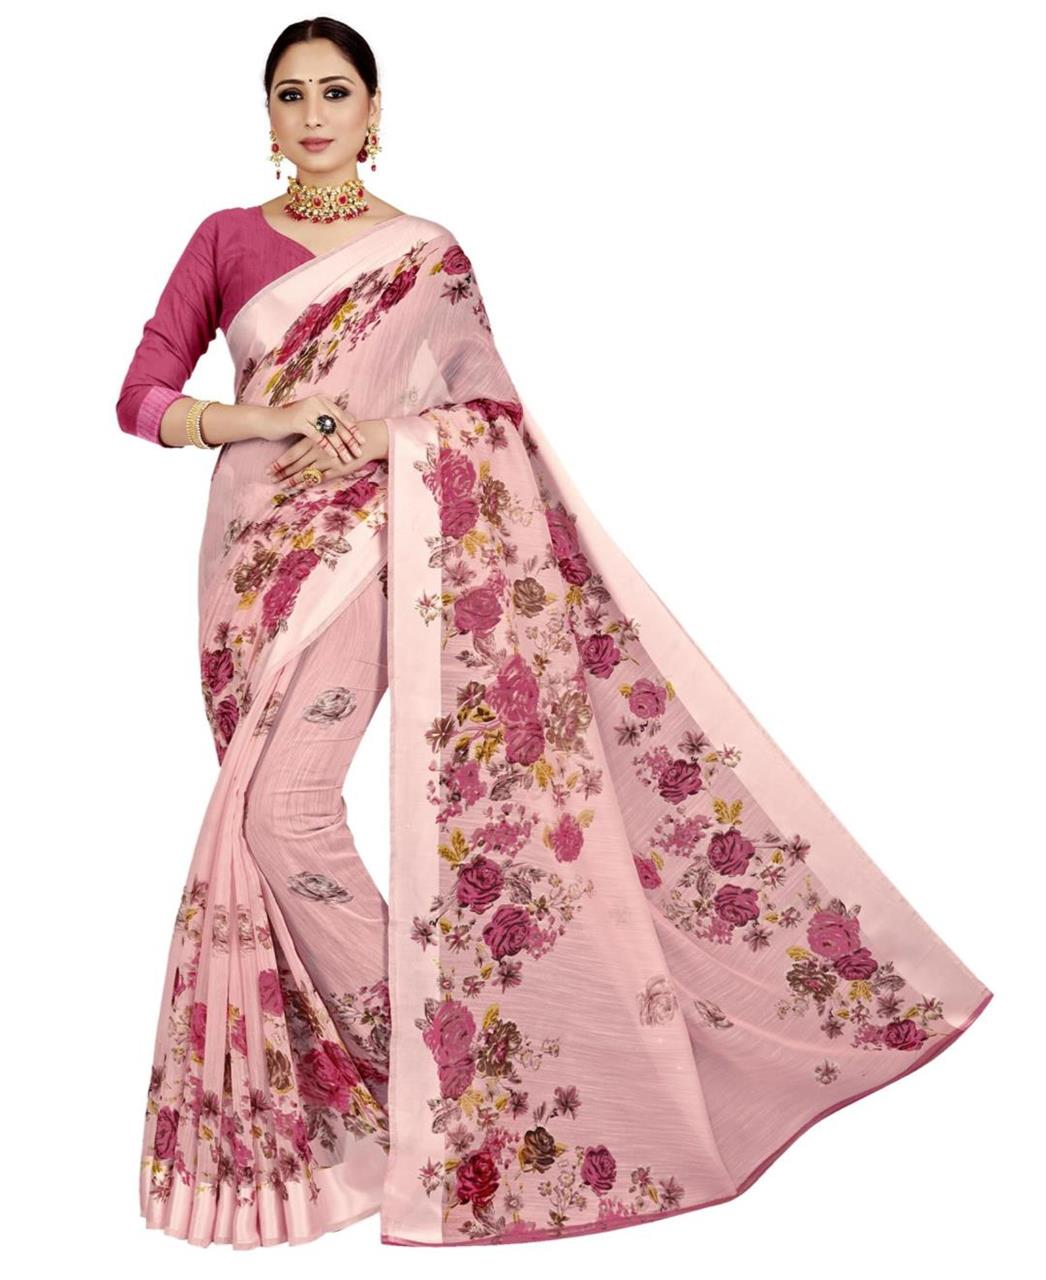 Printed Cotton Saree in Pink